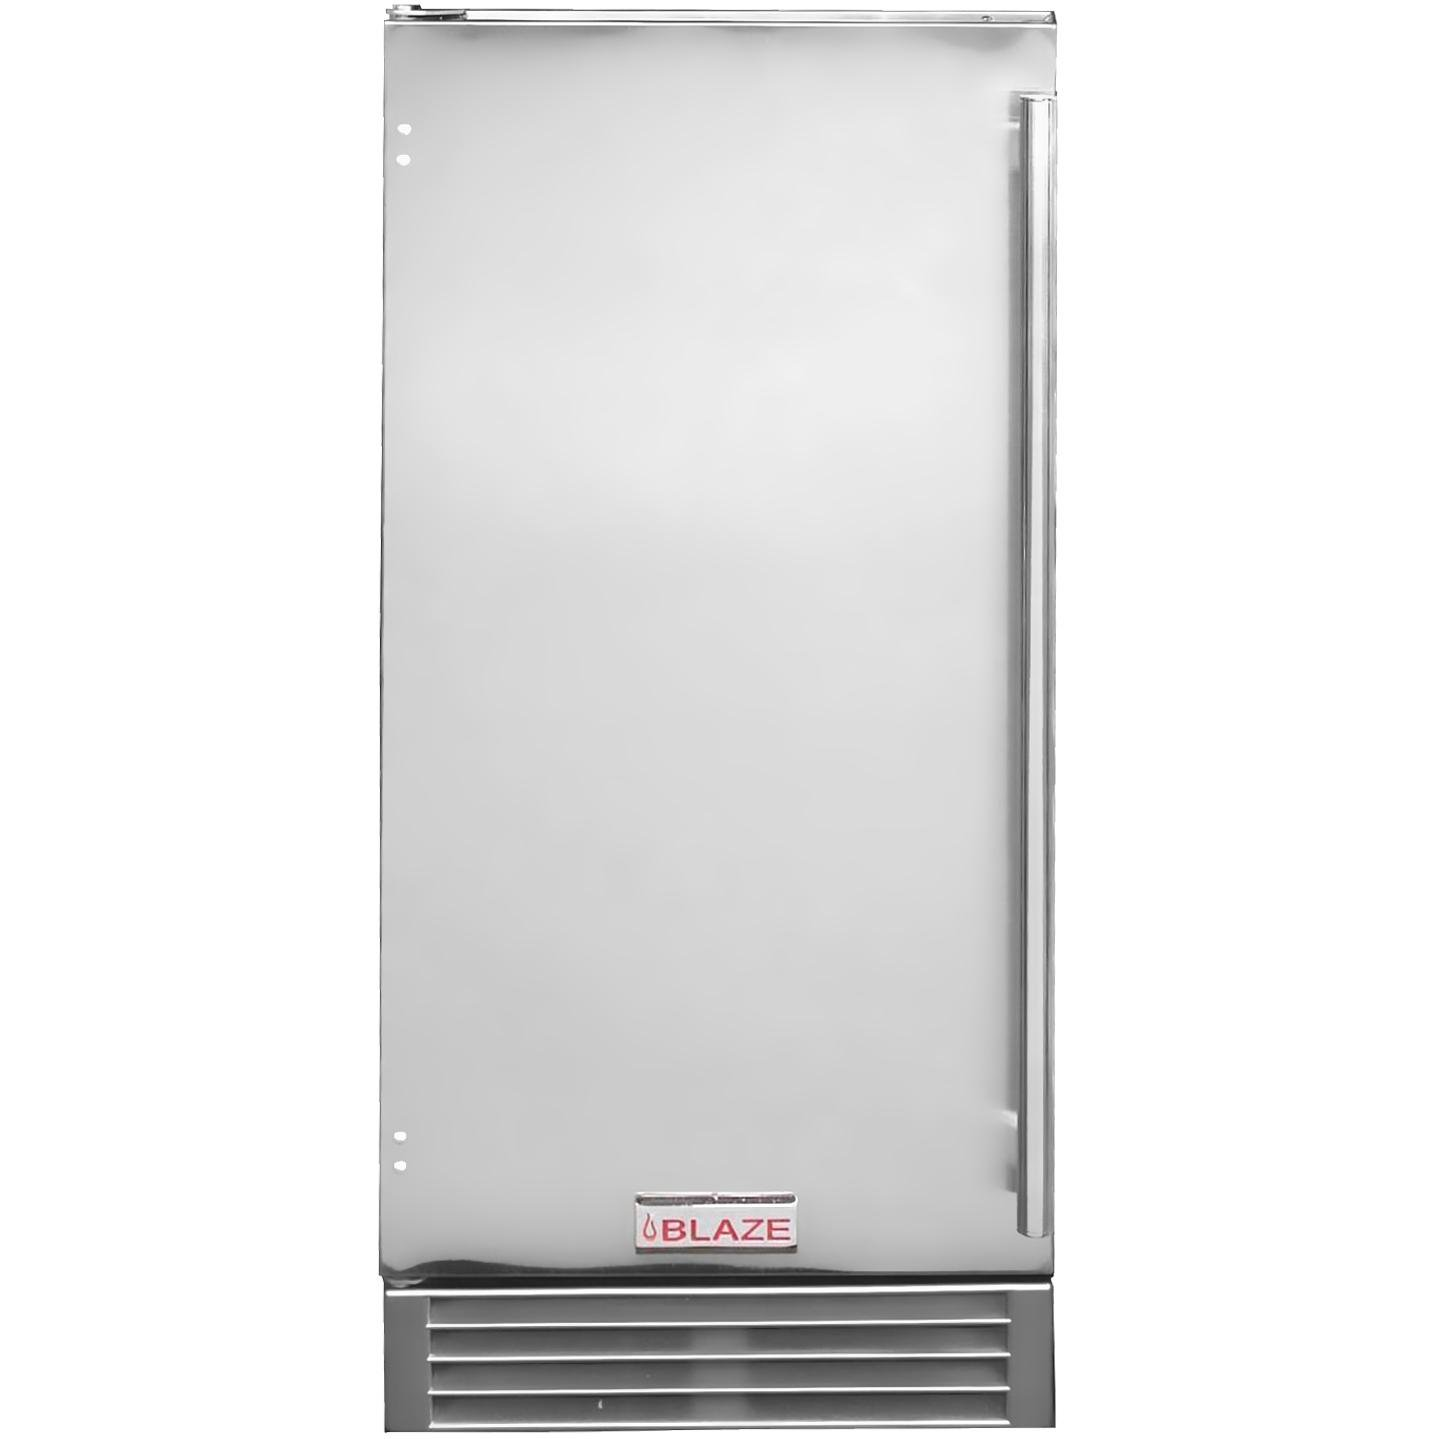 Blaze 50 Lb. 15-inch Built-in / Freestanding Outdoor Ice Maker With Gravity Drain - Stainless Steel